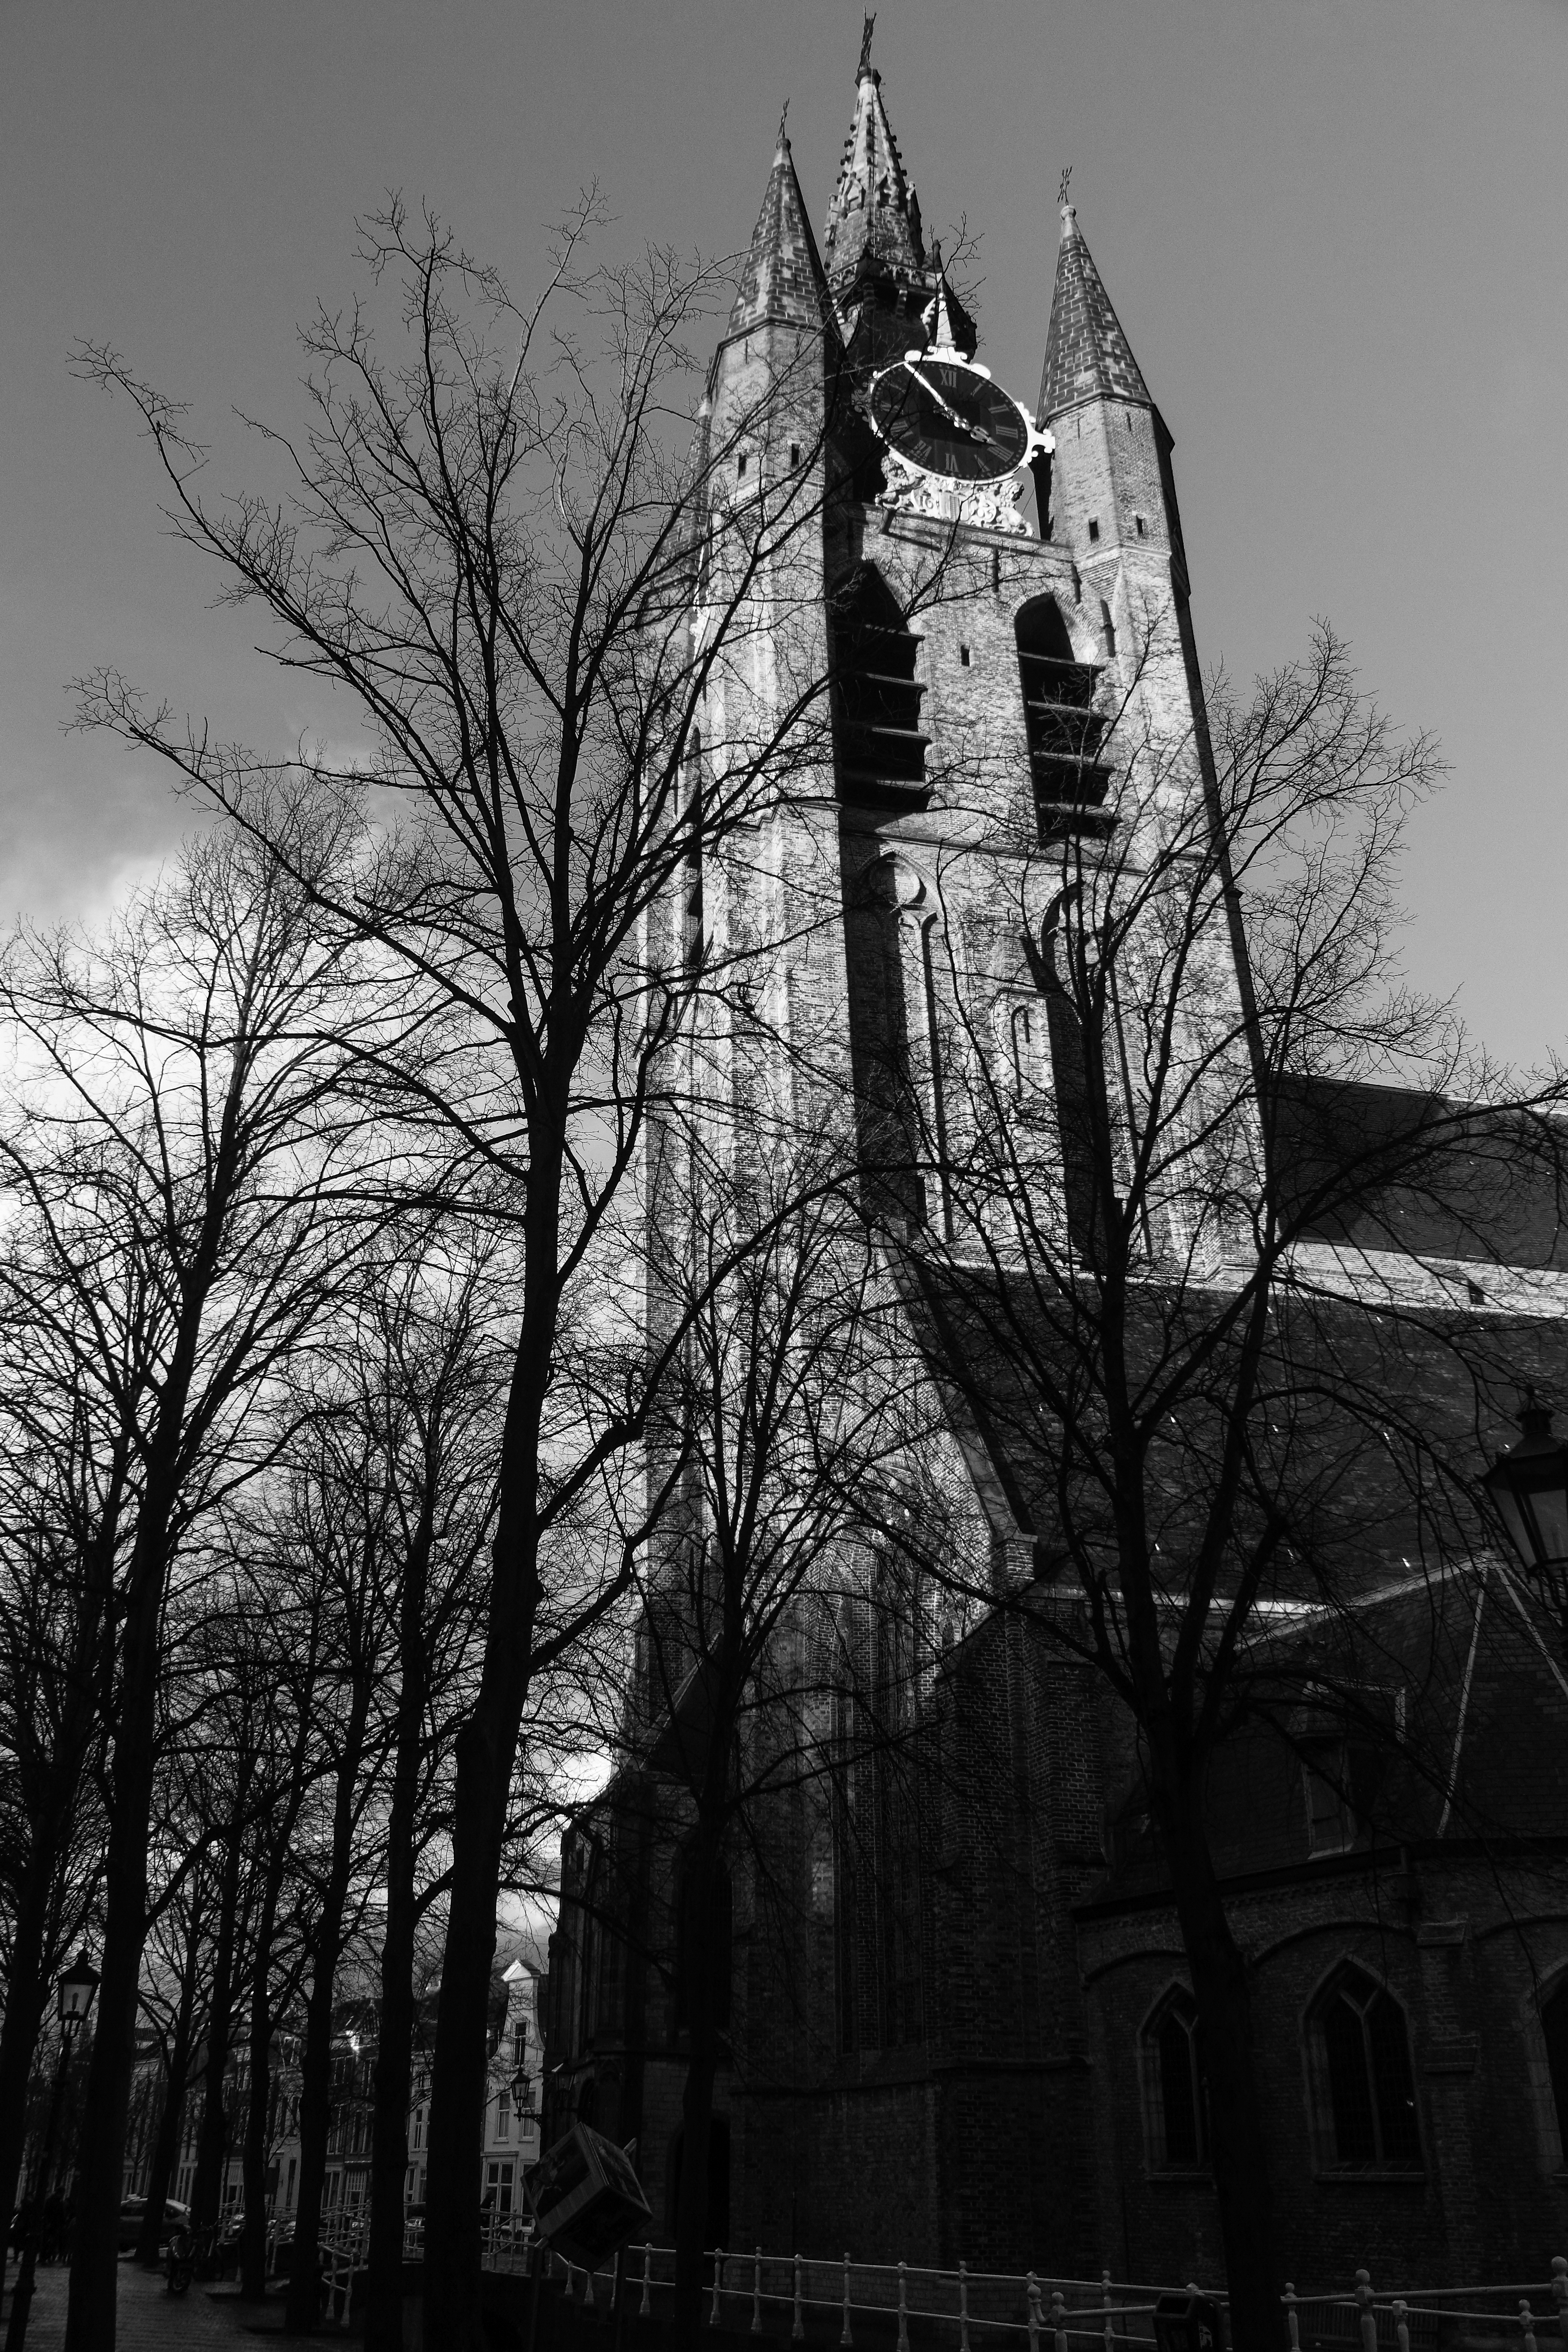 The Leaning Church, Delft, Netherlands